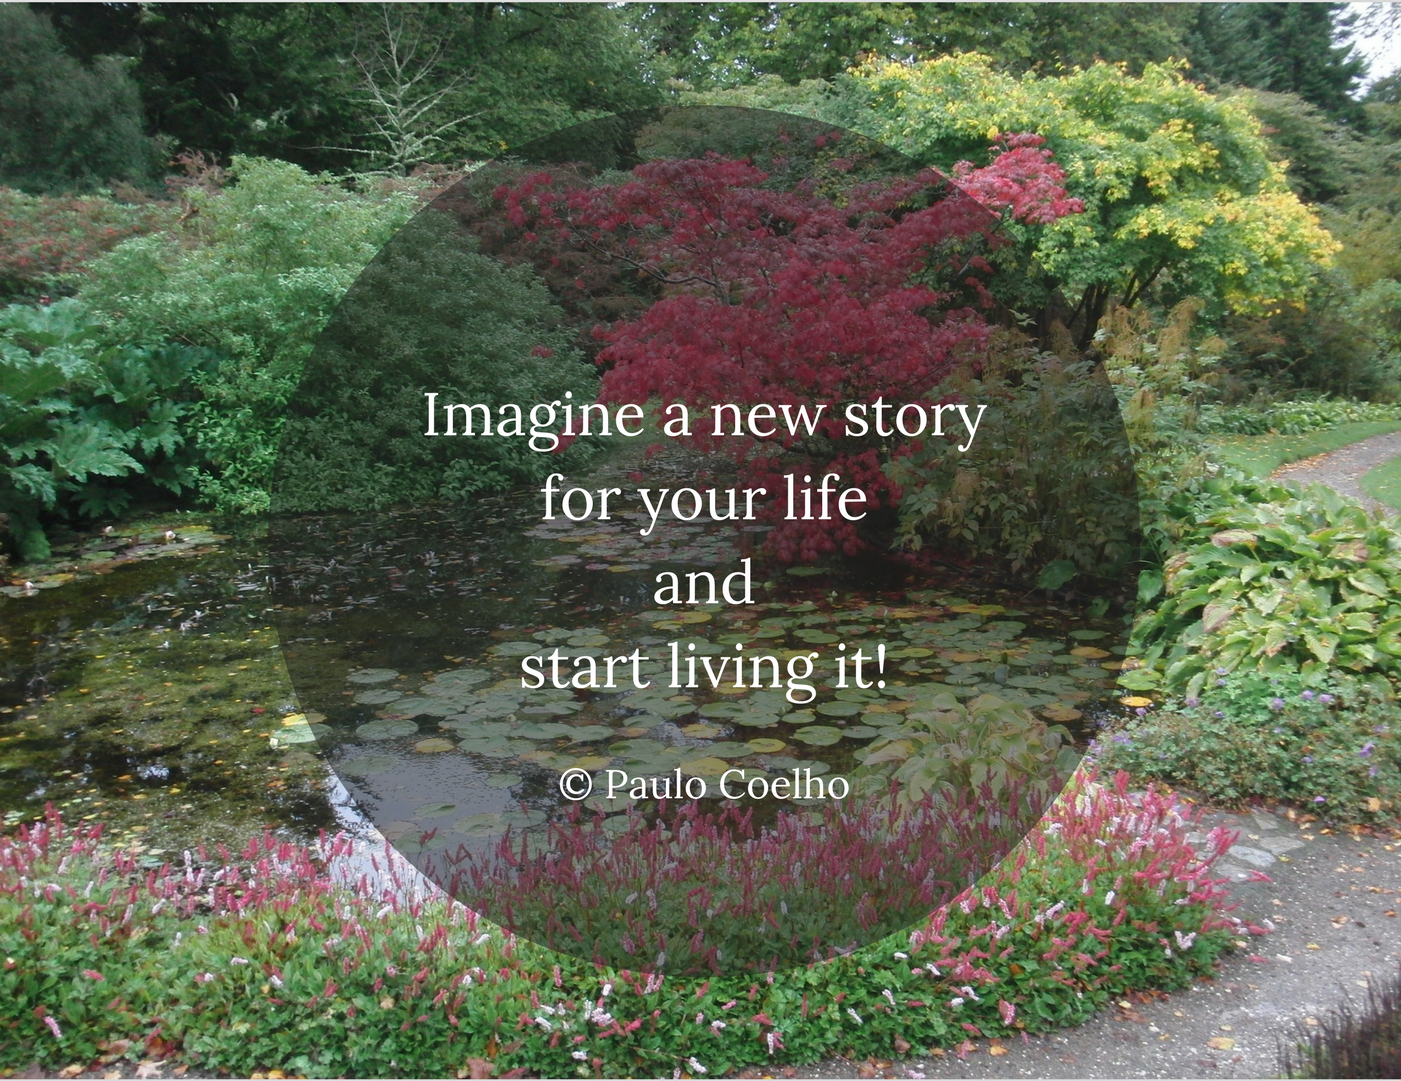 Imagine a new story for your live and start living it!